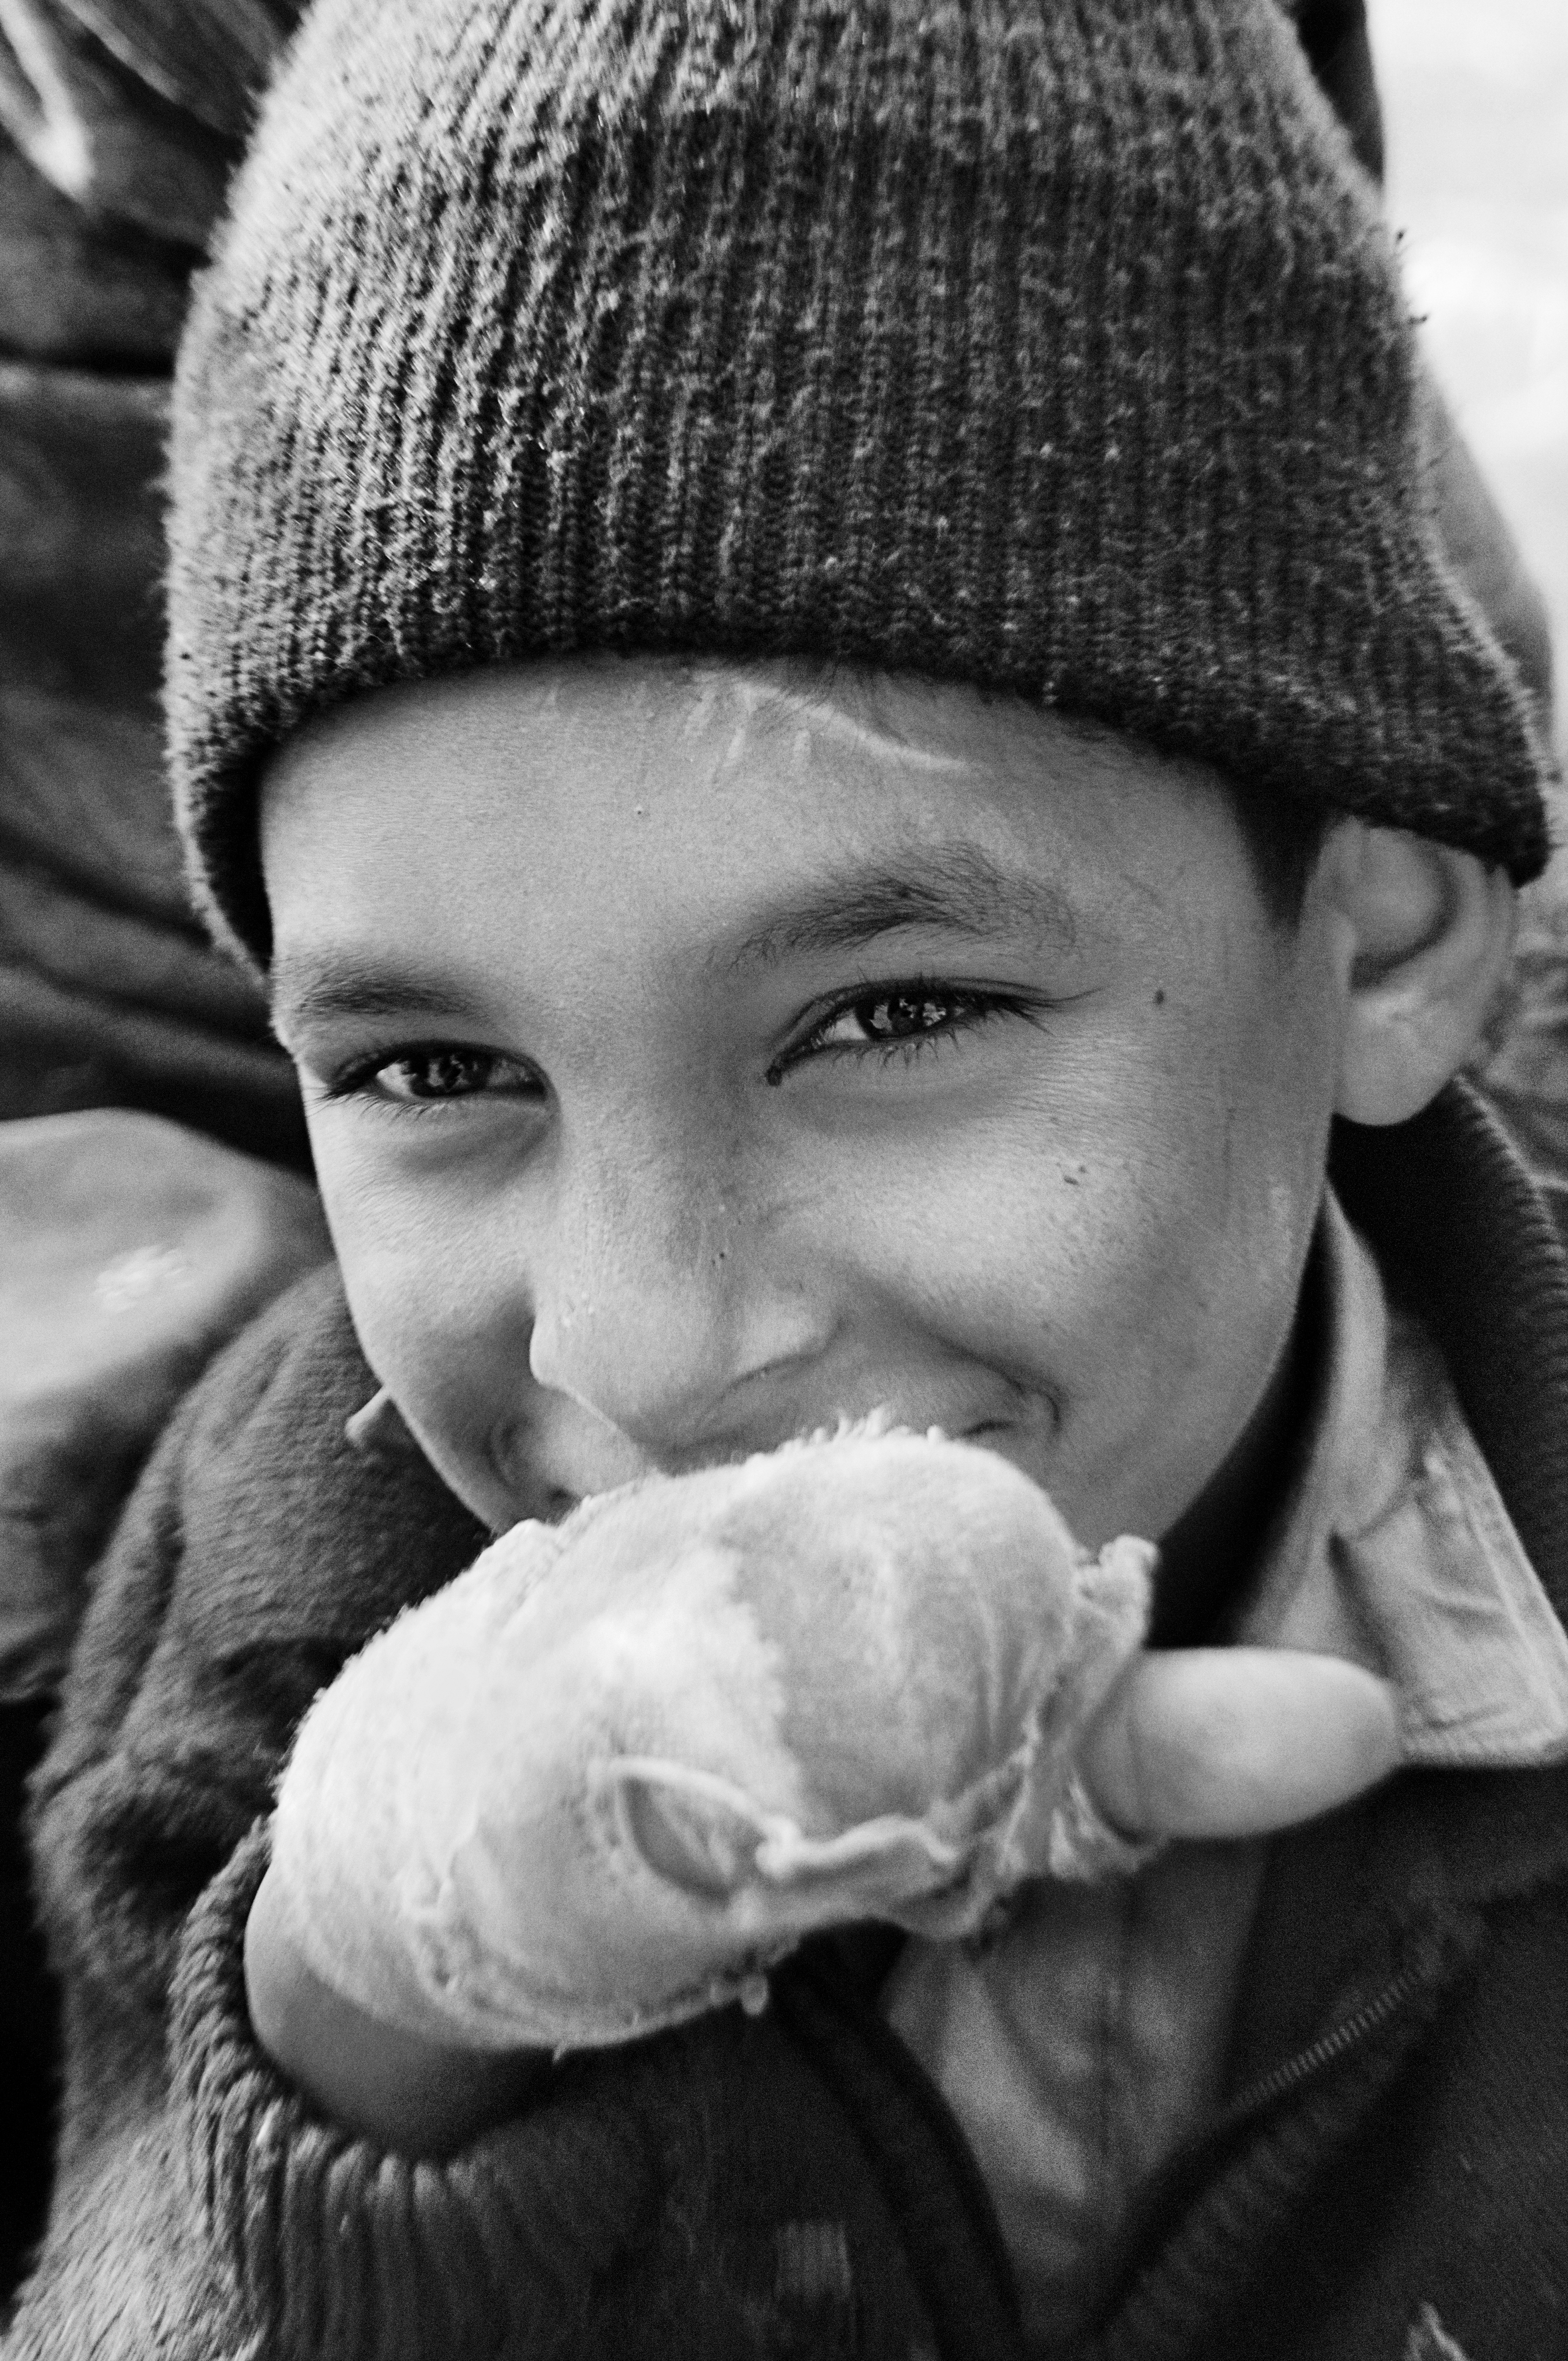 boy_wrapped_hand